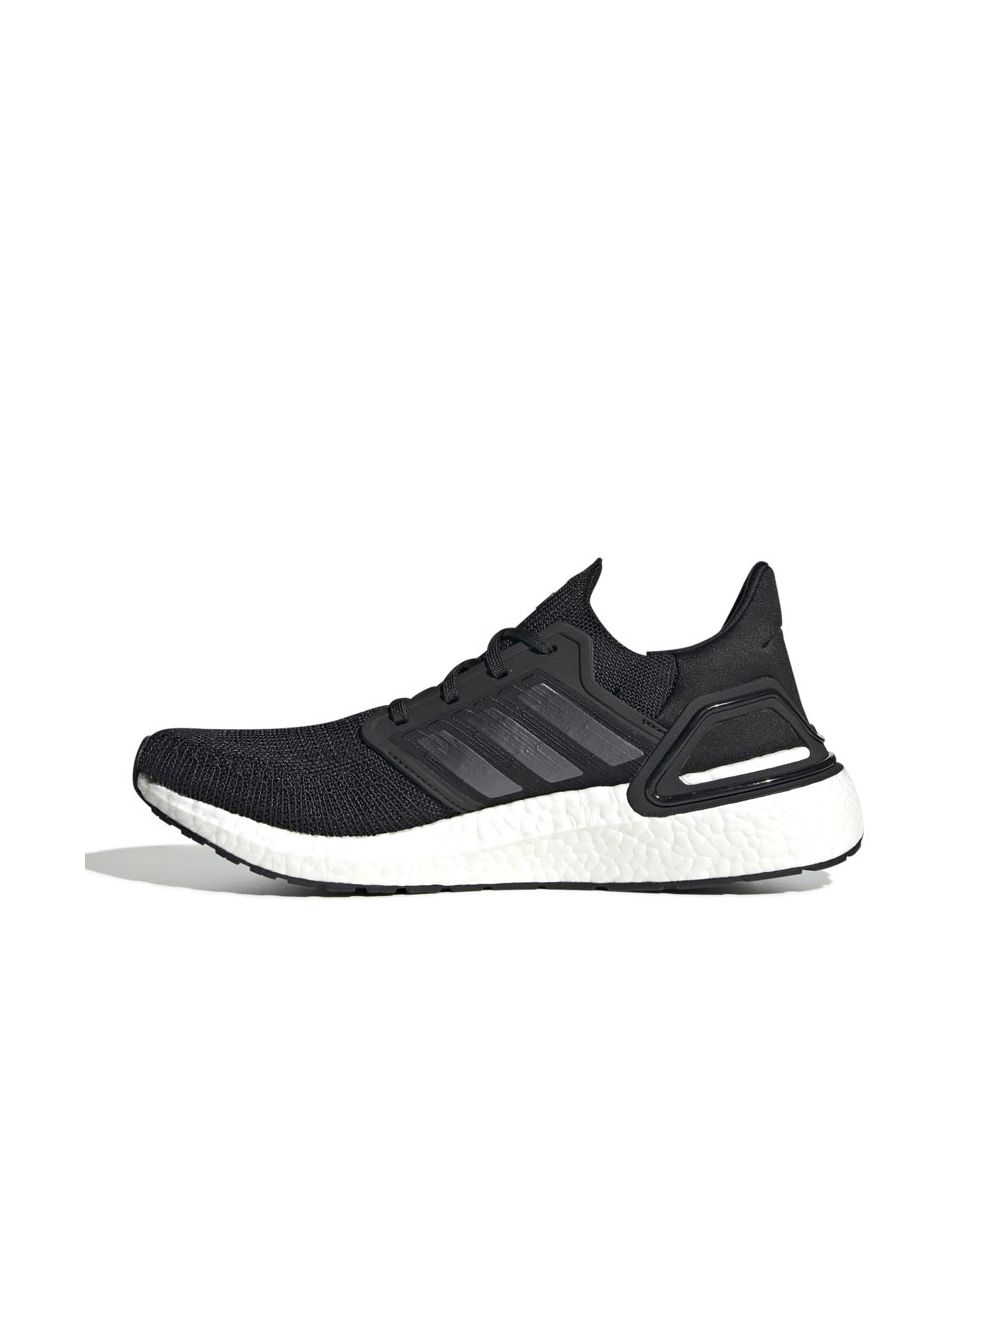 frecuentemente eficaz Plaga  adidas Performance Ultraboost 20 Sneaker Mens Black Night Metallic Cloud  White